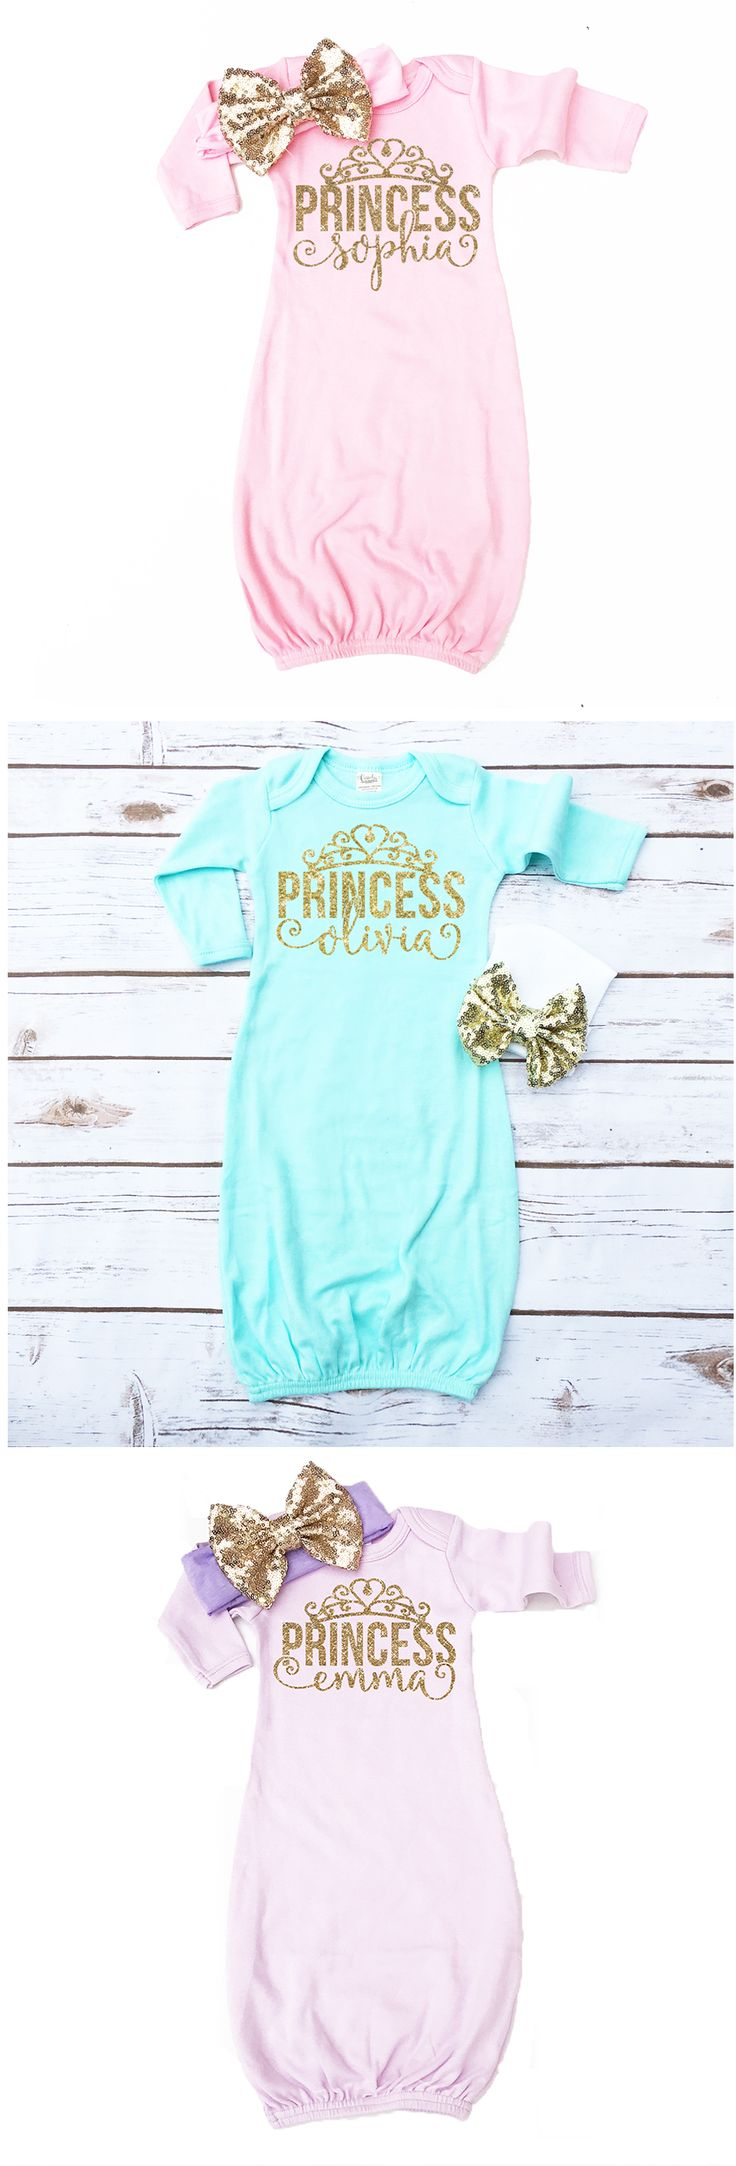 Personalized Princess Baby Gowns. Love the pastel color options! Which is your favorite, Pink, Mint, or Lilac? Customized with your baby's name. The perfect gender reveal outfit and coming home from the hospital outfit.